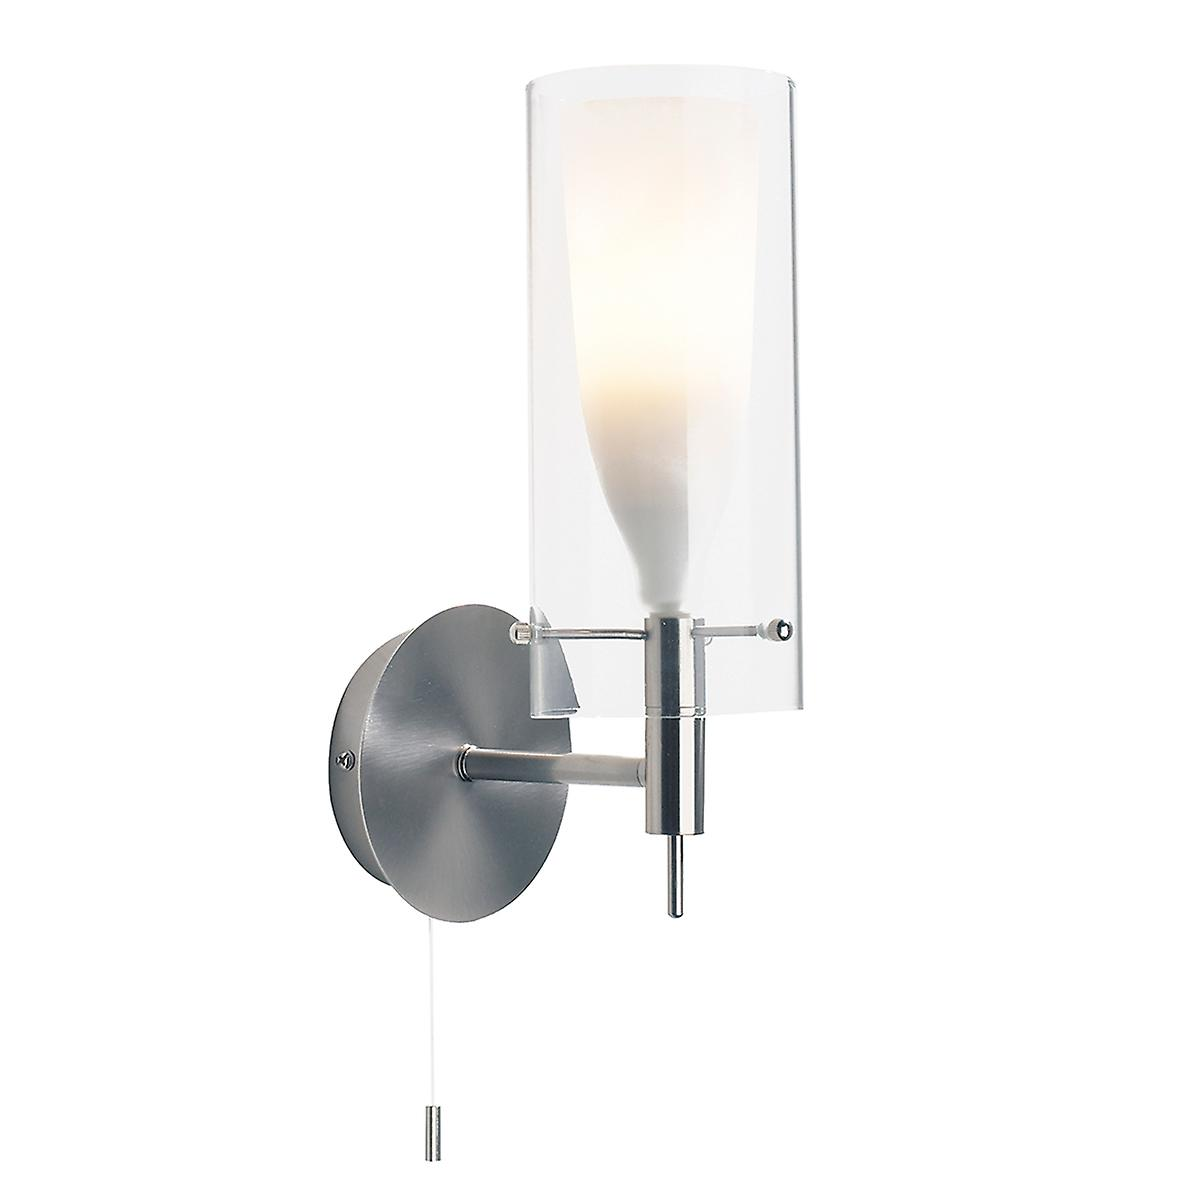 Dar BOD0746 Boda Modern Chrome Switched Wall Light With Double Glass